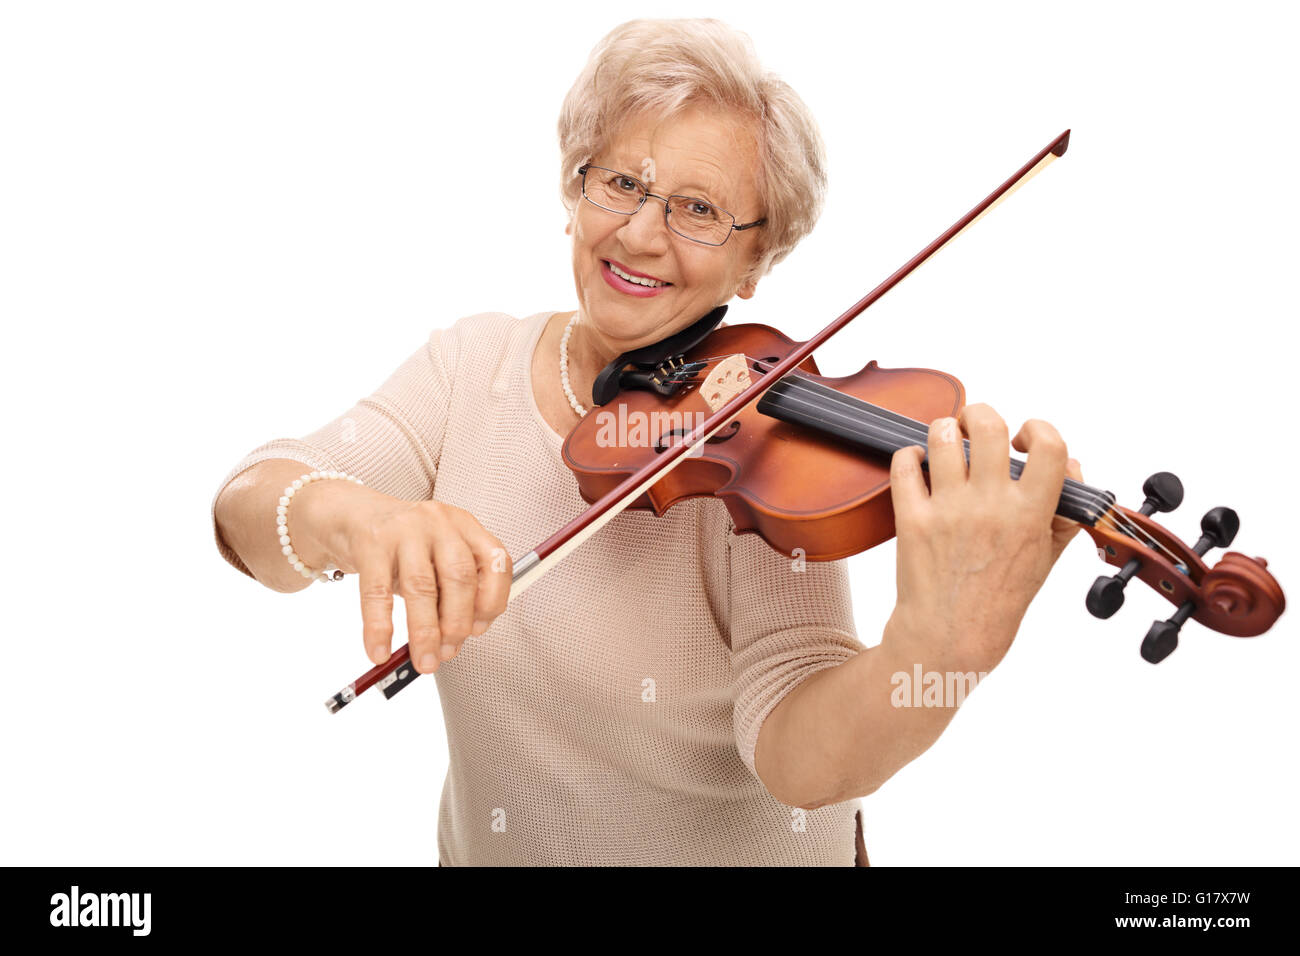 woman playing violin stock photos & woman playing violin stock